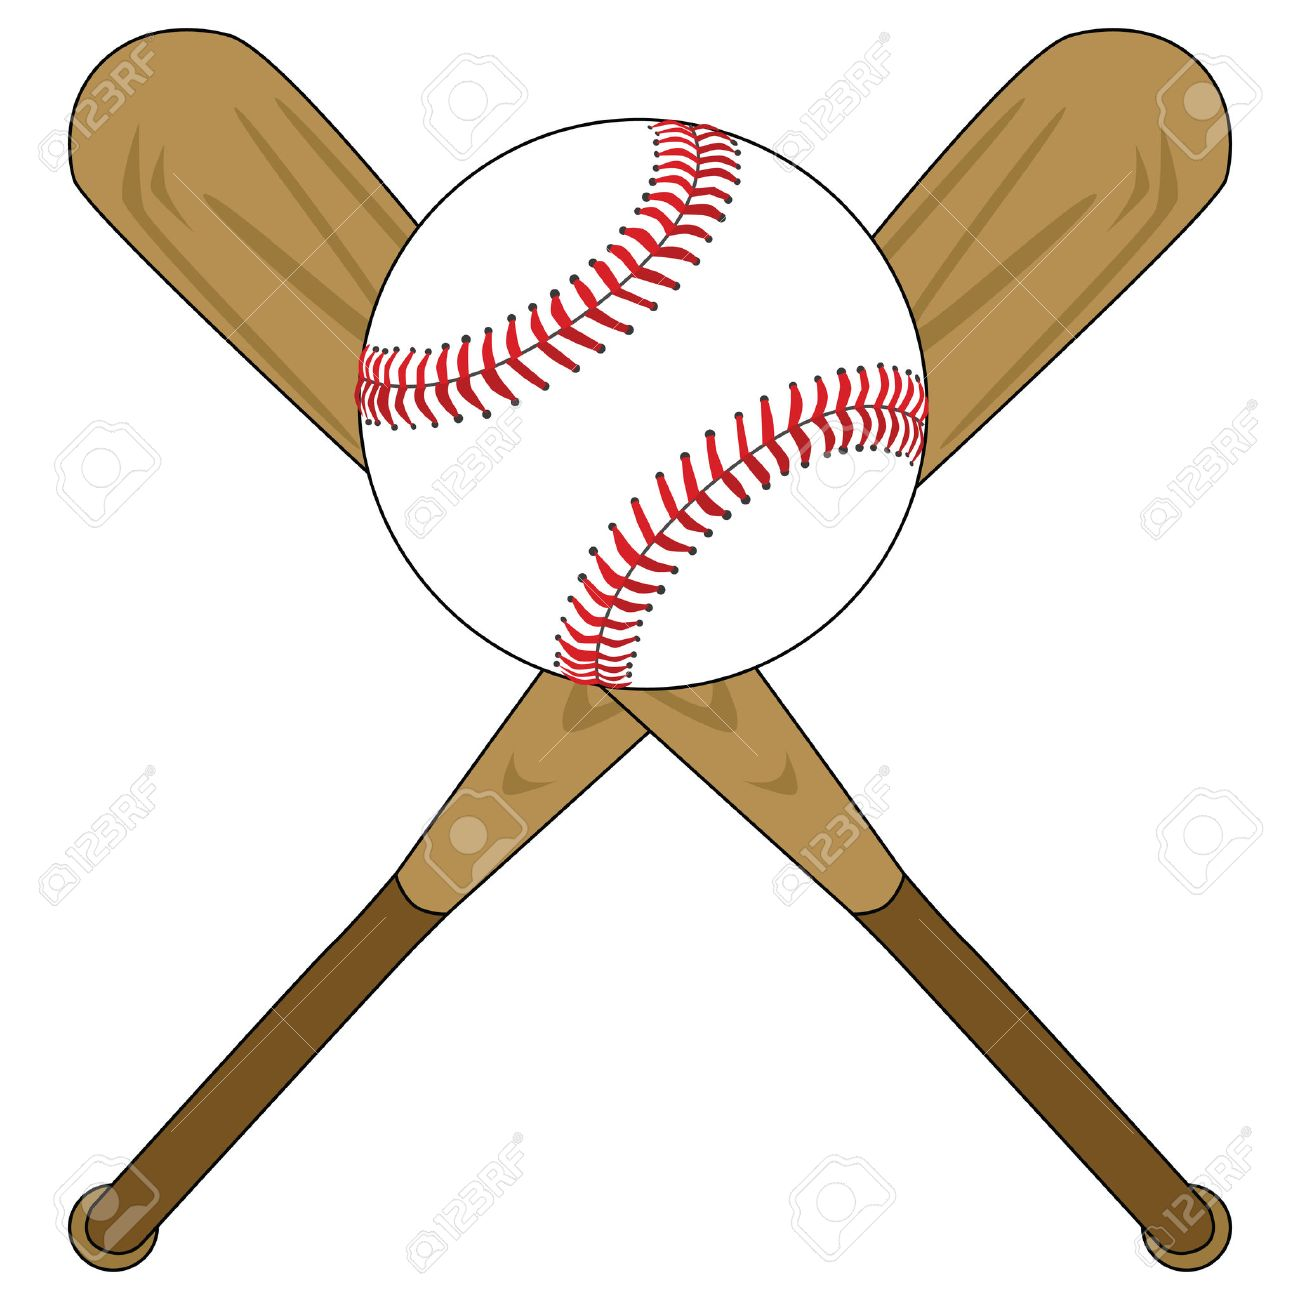 illustration of two wooden baseball bats and a baseball royalty free rh 123rf com Baseball Bat Vector Logo Baseball Bat Vector Logo